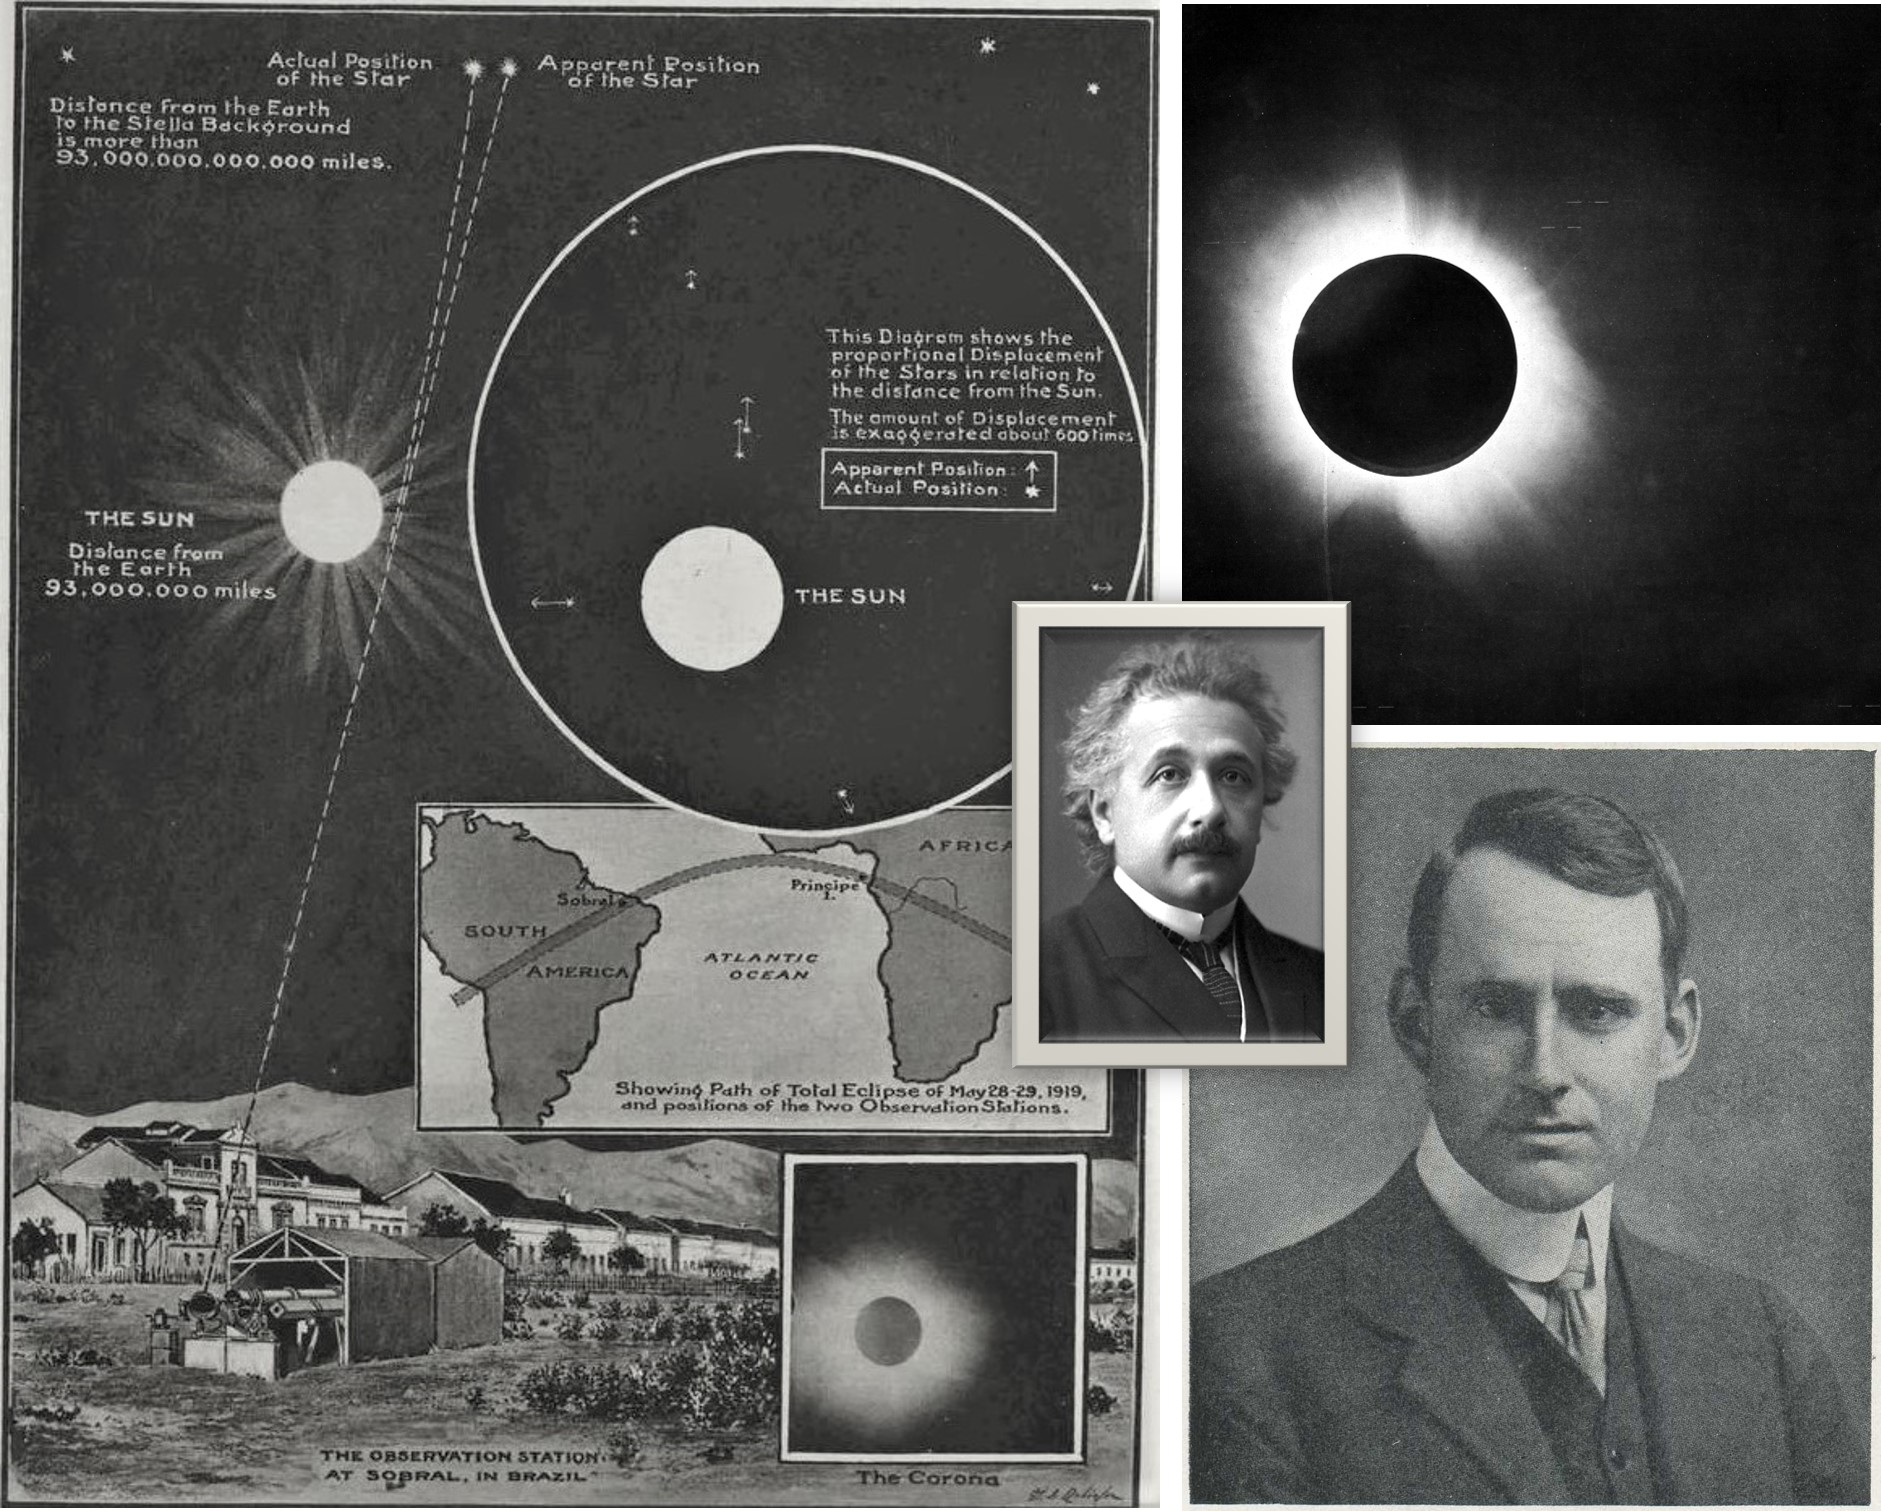 Collage of images related to solar eclipse of May 1919, which made Albert Einstein world famous